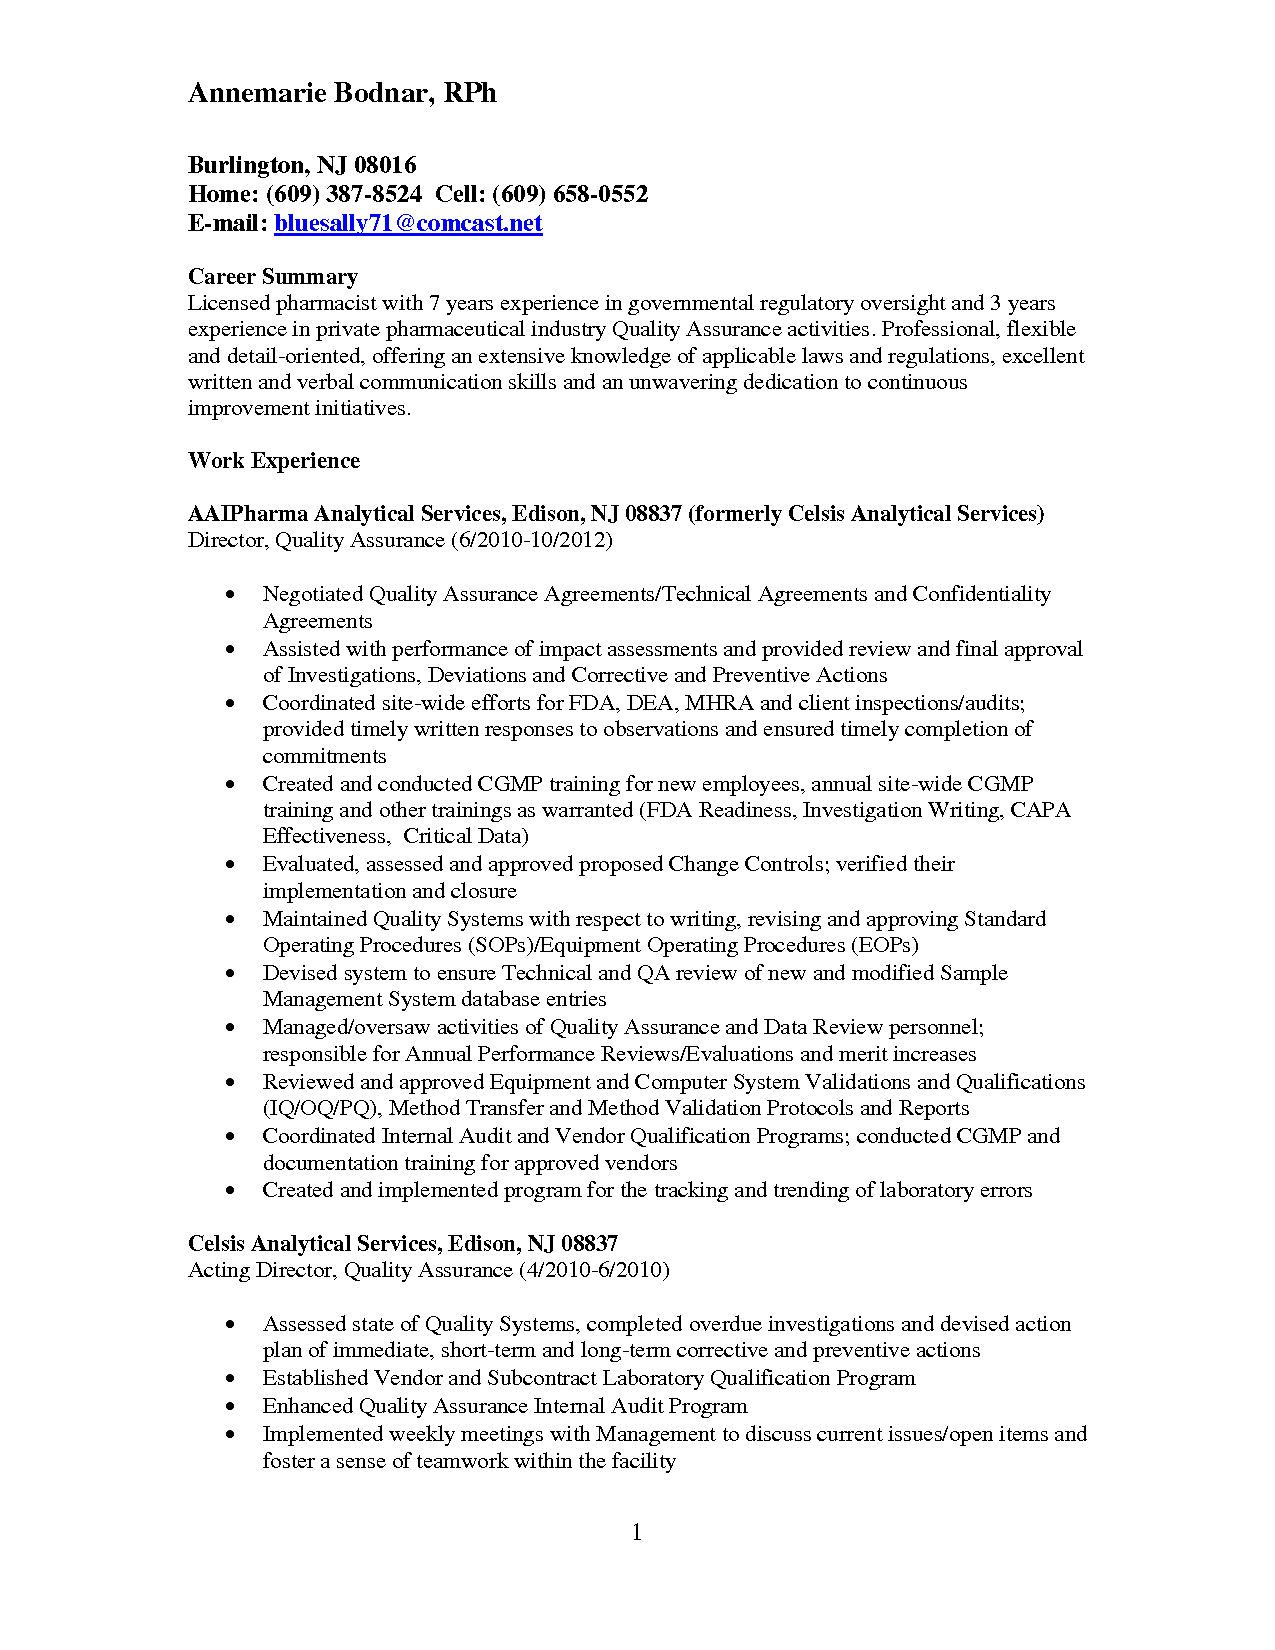 Software Quality Assurance Report Template And Dental Hygienist Within Software Quality Assurance Report Template